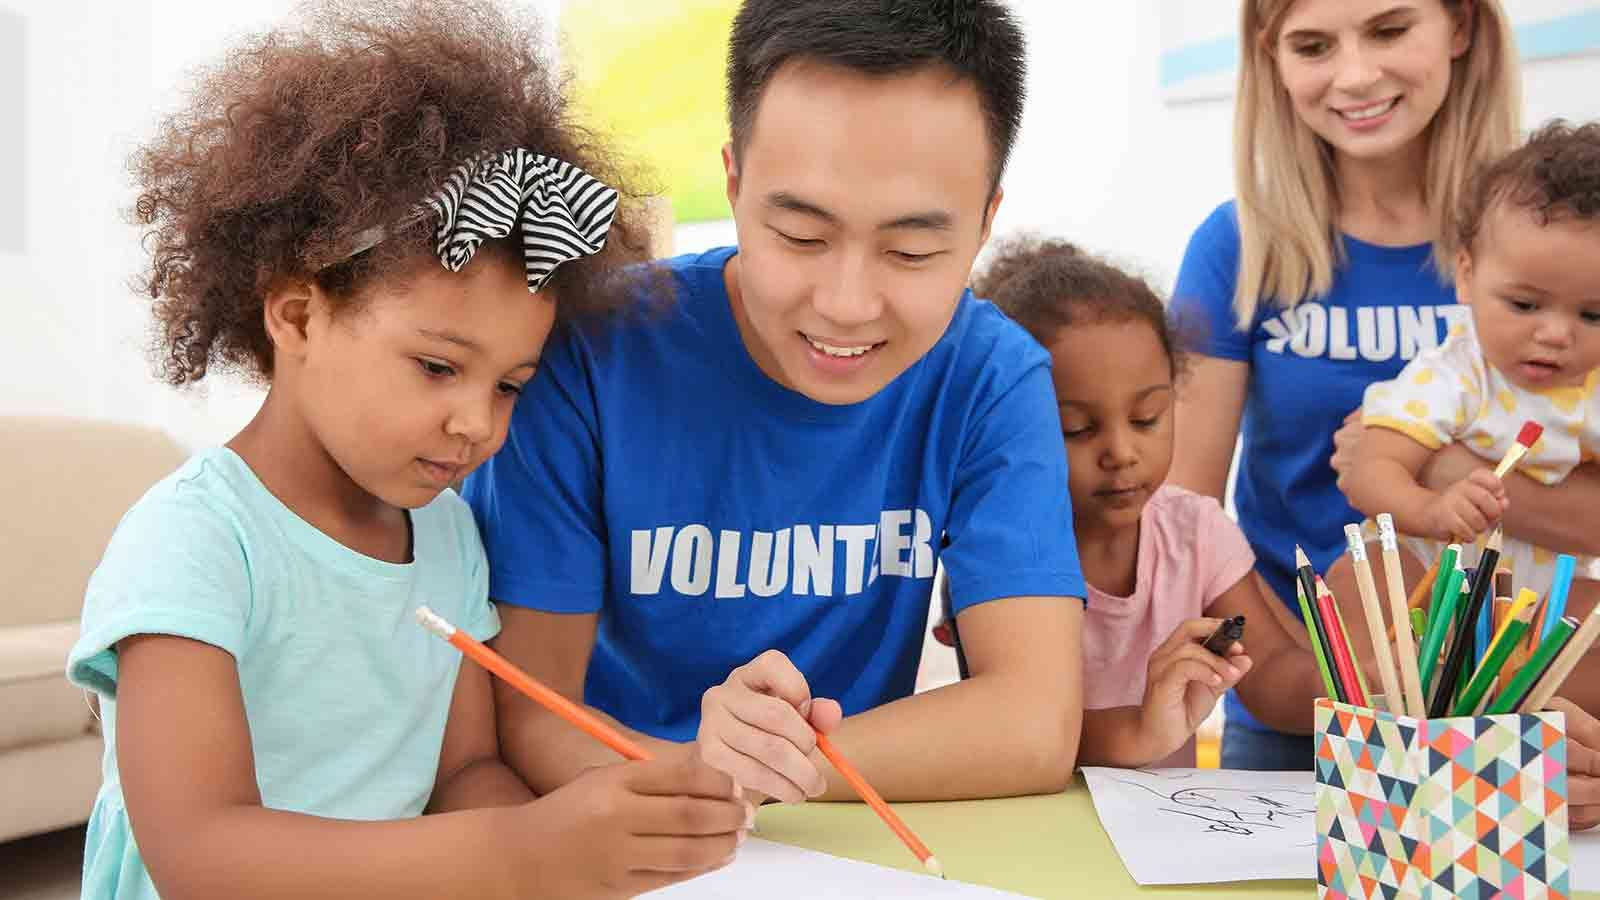 volunteers helping young children draw and work on homework